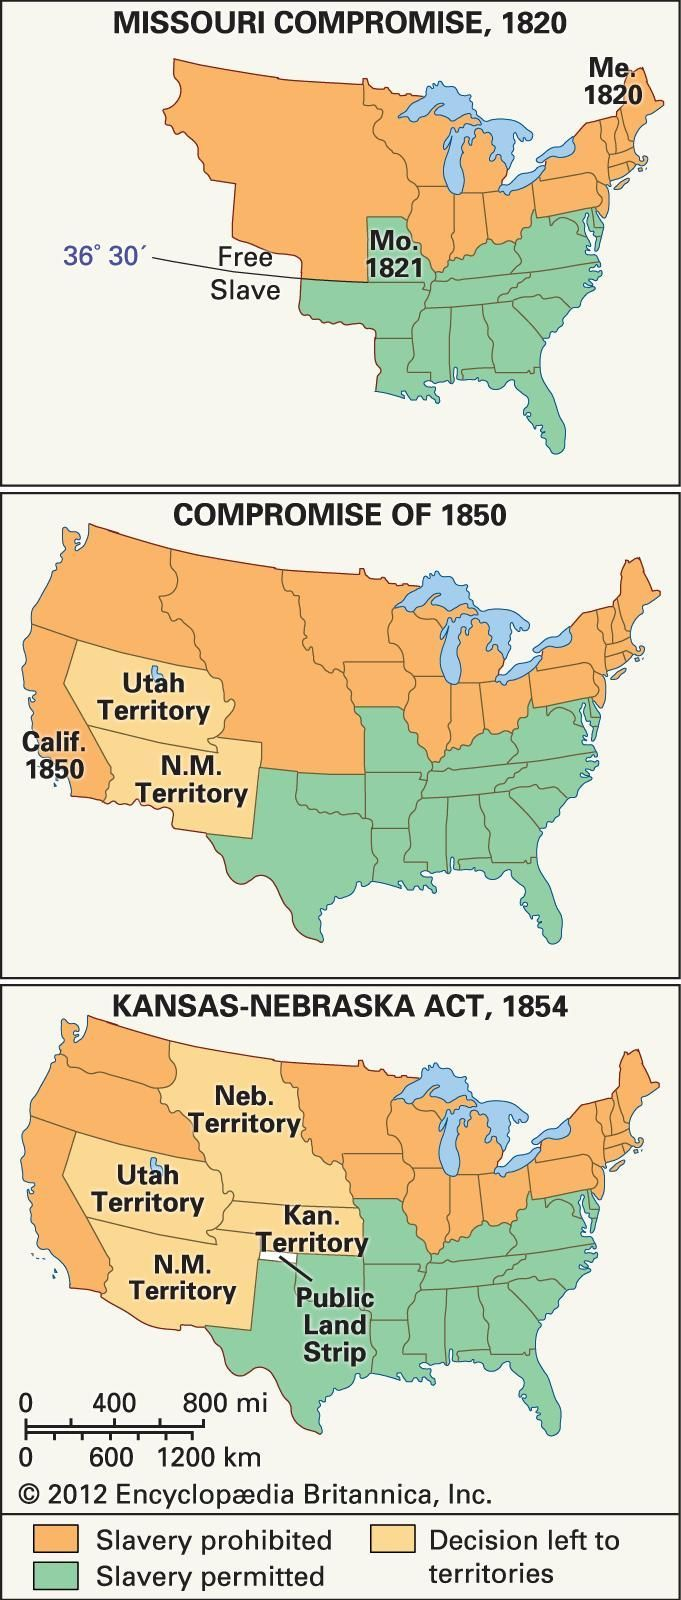 worksheet The Kansas Nebraska Act Of 1854 Worksheet Answers the kansas nebraska act was passed by u s congress on may 30 1854 it allowed people in territories ofkansas and nebras